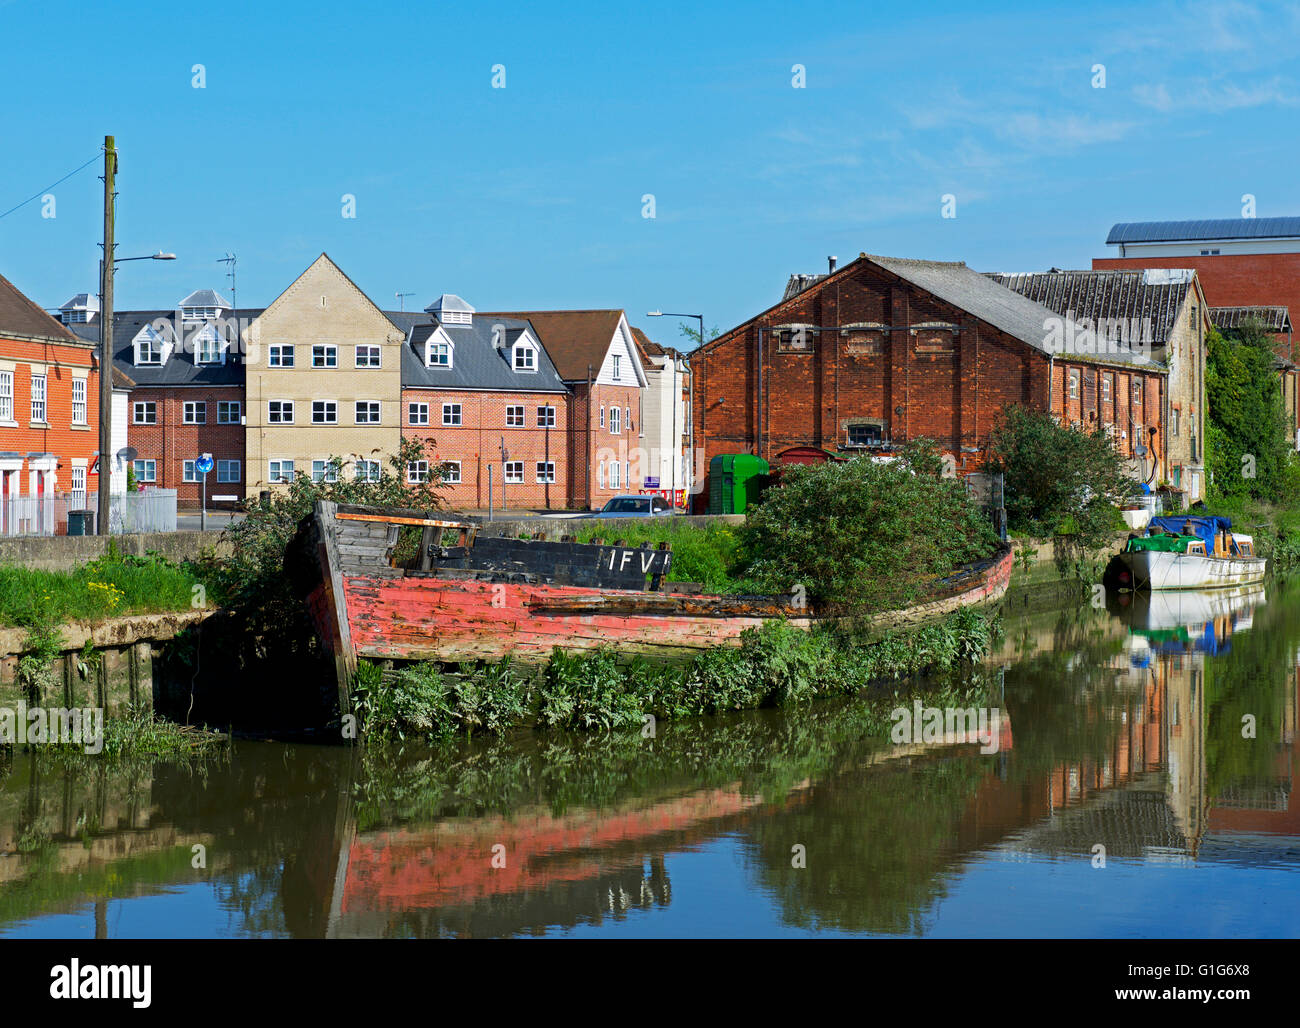 Old boat moored at Hythe Quay, on River Colne, Colchester, Essex - Stock Image